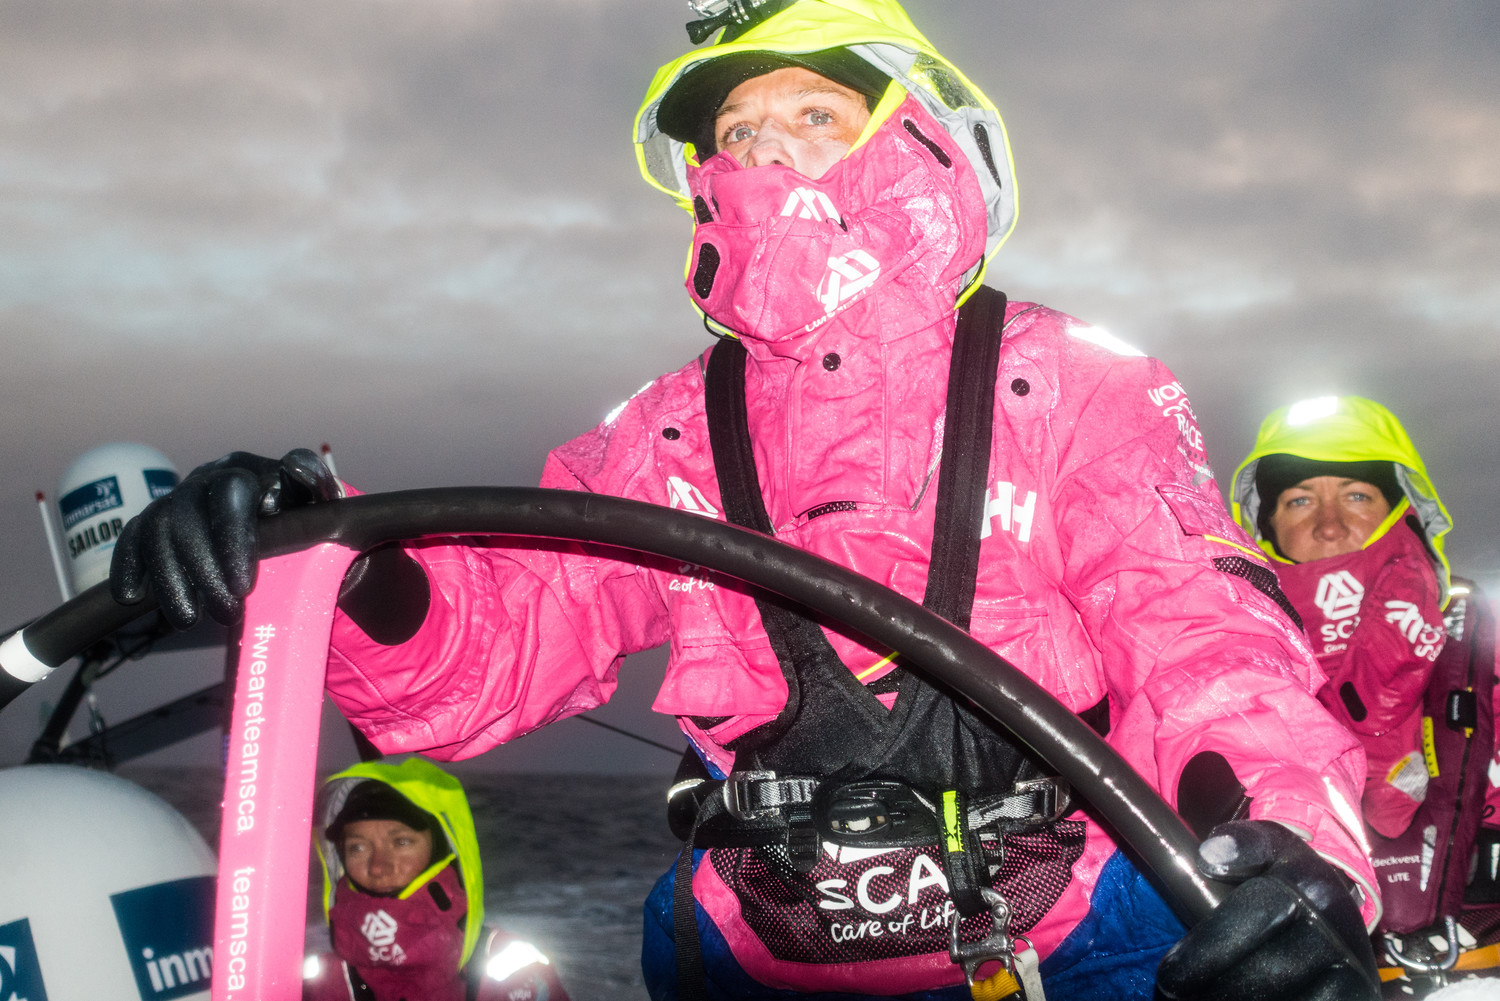 March 28, 2015. Leg 5 to Itajai onboard Team SCA. Day 10. Liz Wardley at the helm. Anna-Lena Elled / Team SCA / Volvo Ocean Race